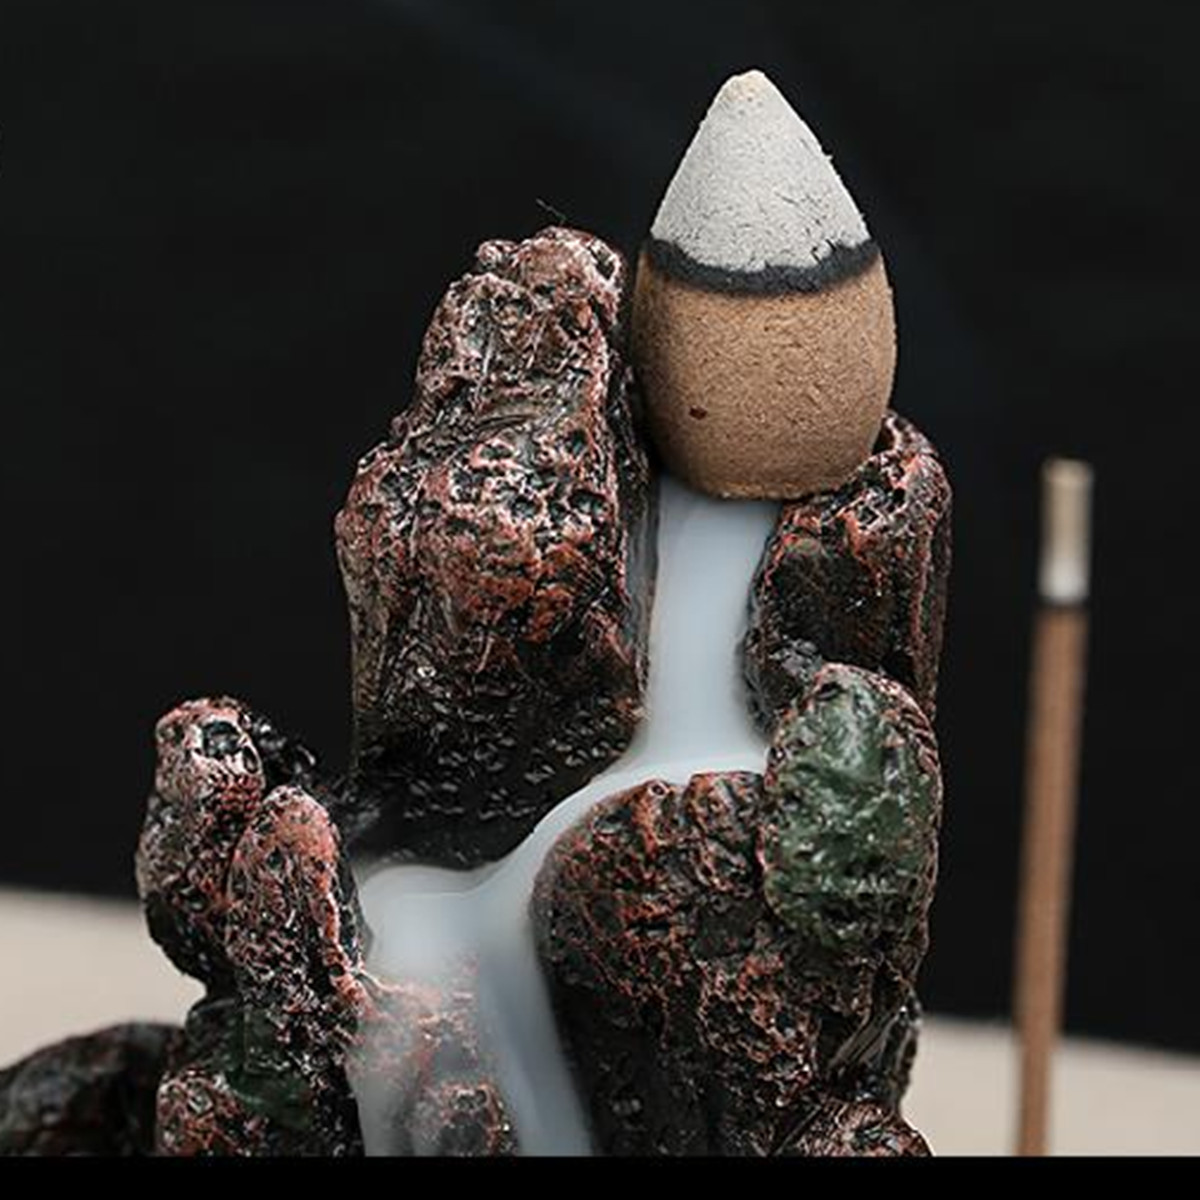 Backflow Incense Cone Burner Incense Stick Coil Holder Rockery Mountain Stream Fragrant Censer Decor